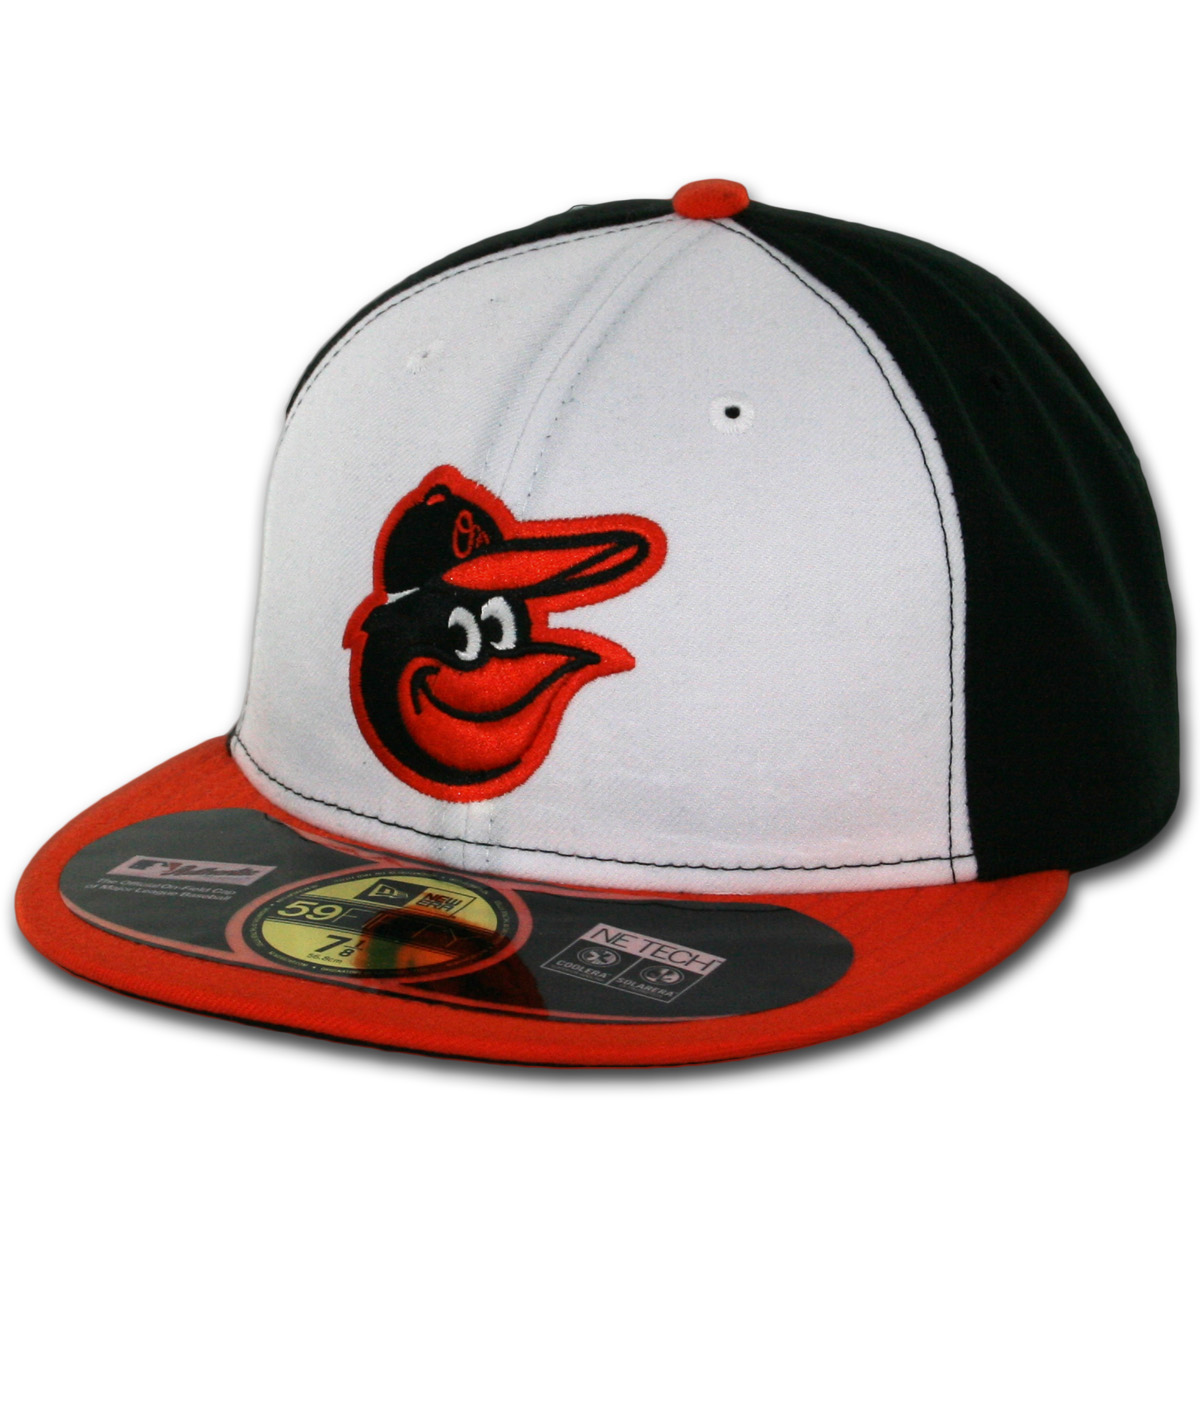 22cfe596703 New Era 59Fifty Baltimore Orioles 2016 Home Authentic On Field Fitted Hat -  Billion Creation Streetwear